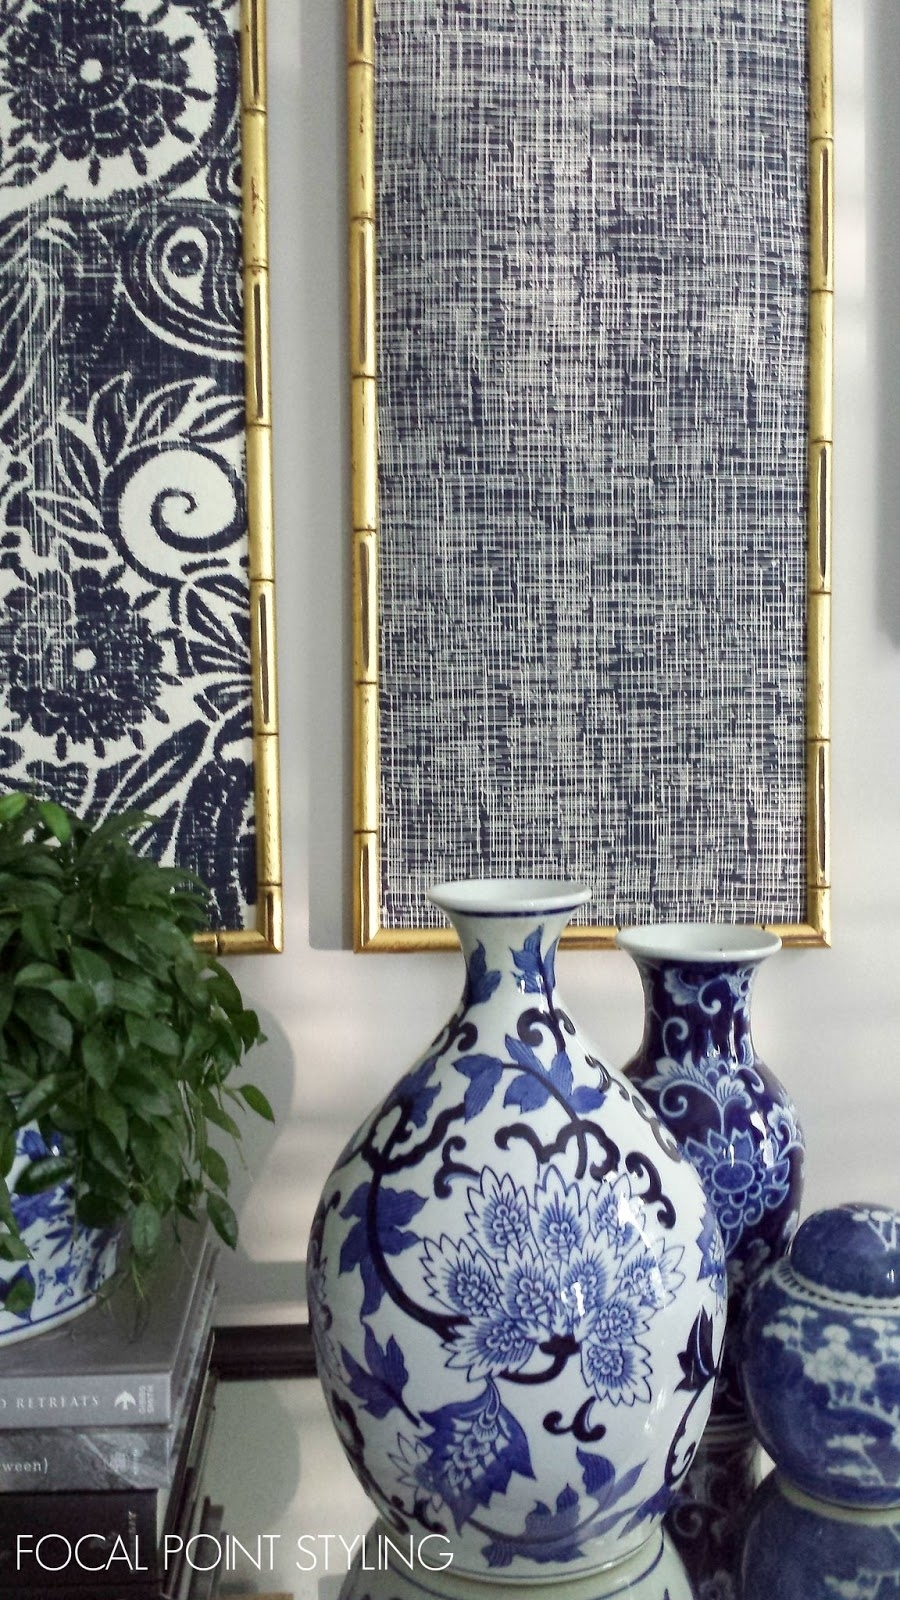 Focal Point Styling: Diy Indigo Wall Art With Framed Fabric In 2018 High End Fabric Wall Art (View 12 of 15)